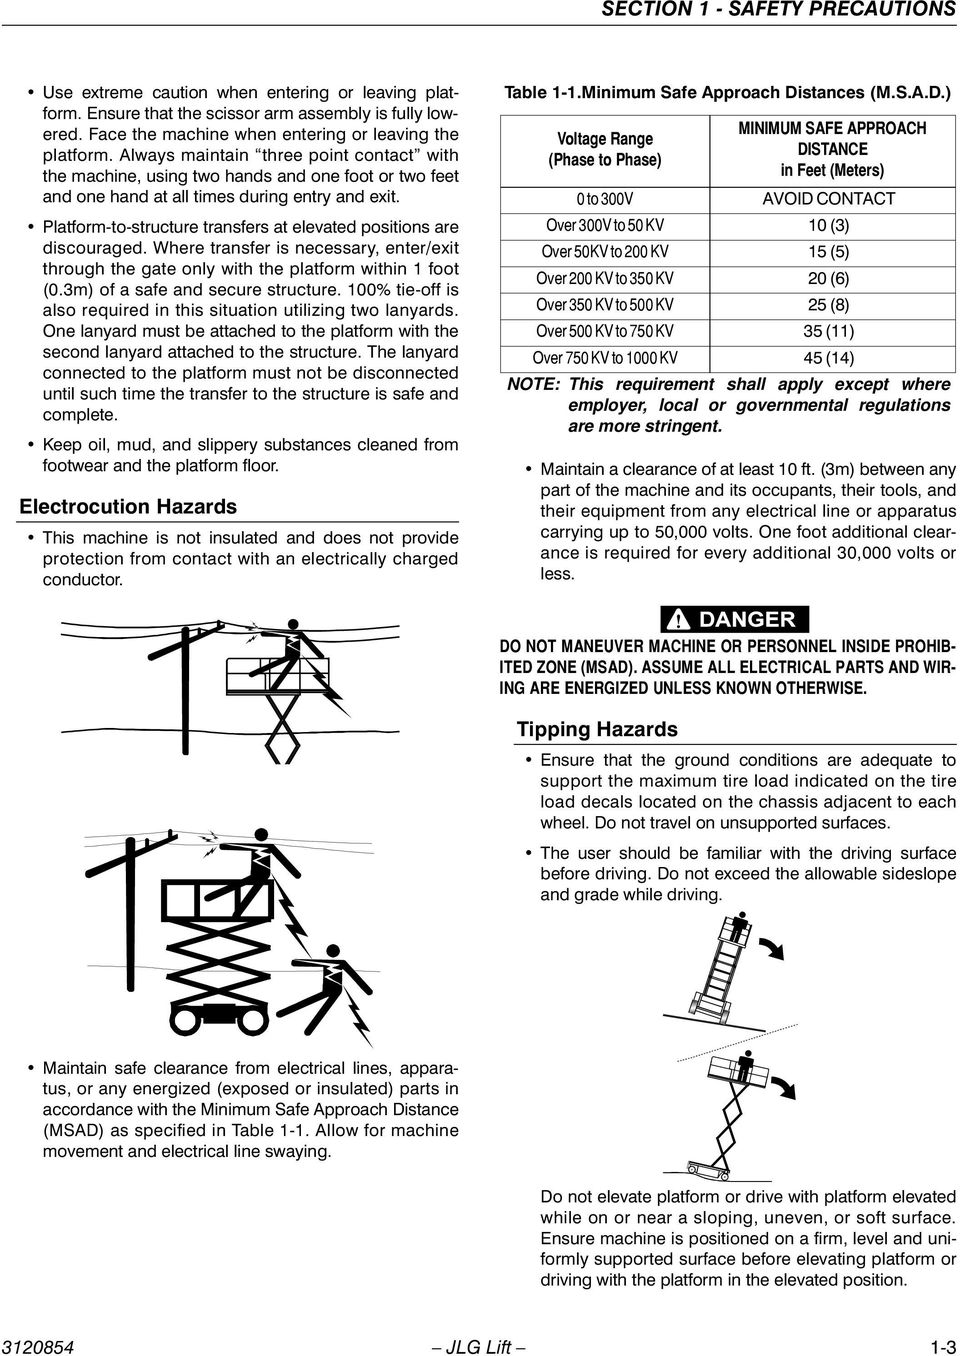 Operators Safety Model 1932e2 2032e2 2632e2 2646e2 3246e2 June Jlg Wiring Diagram Platform To Structure Transfers At Elevated Positions Are Discouraged Where Transfer Is Necessary